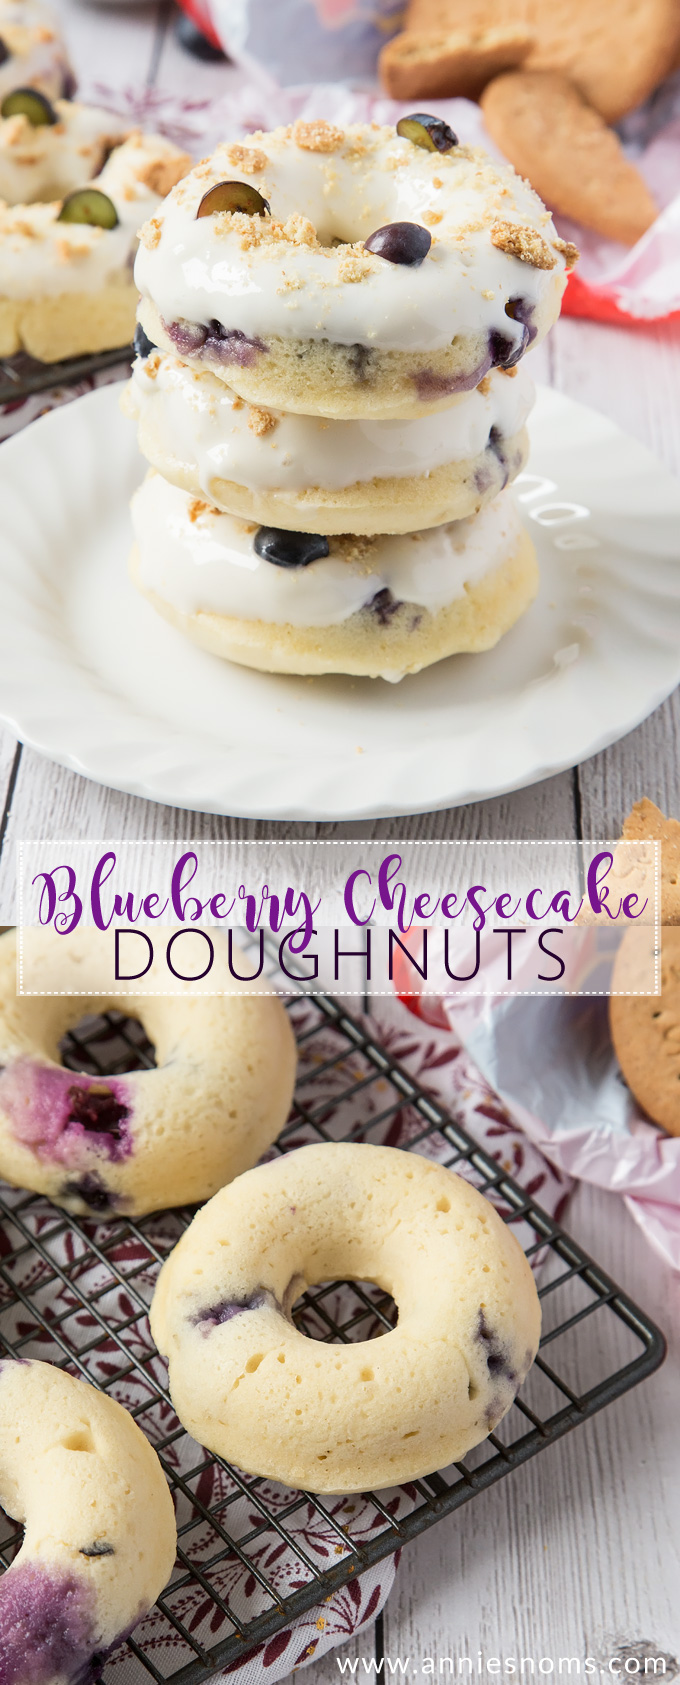 These Baked Blueberry Cheesecake Doughnuts are filled with juicy blueberries and topped with the most amazing cream cheese frosting and biscuit crumbs.